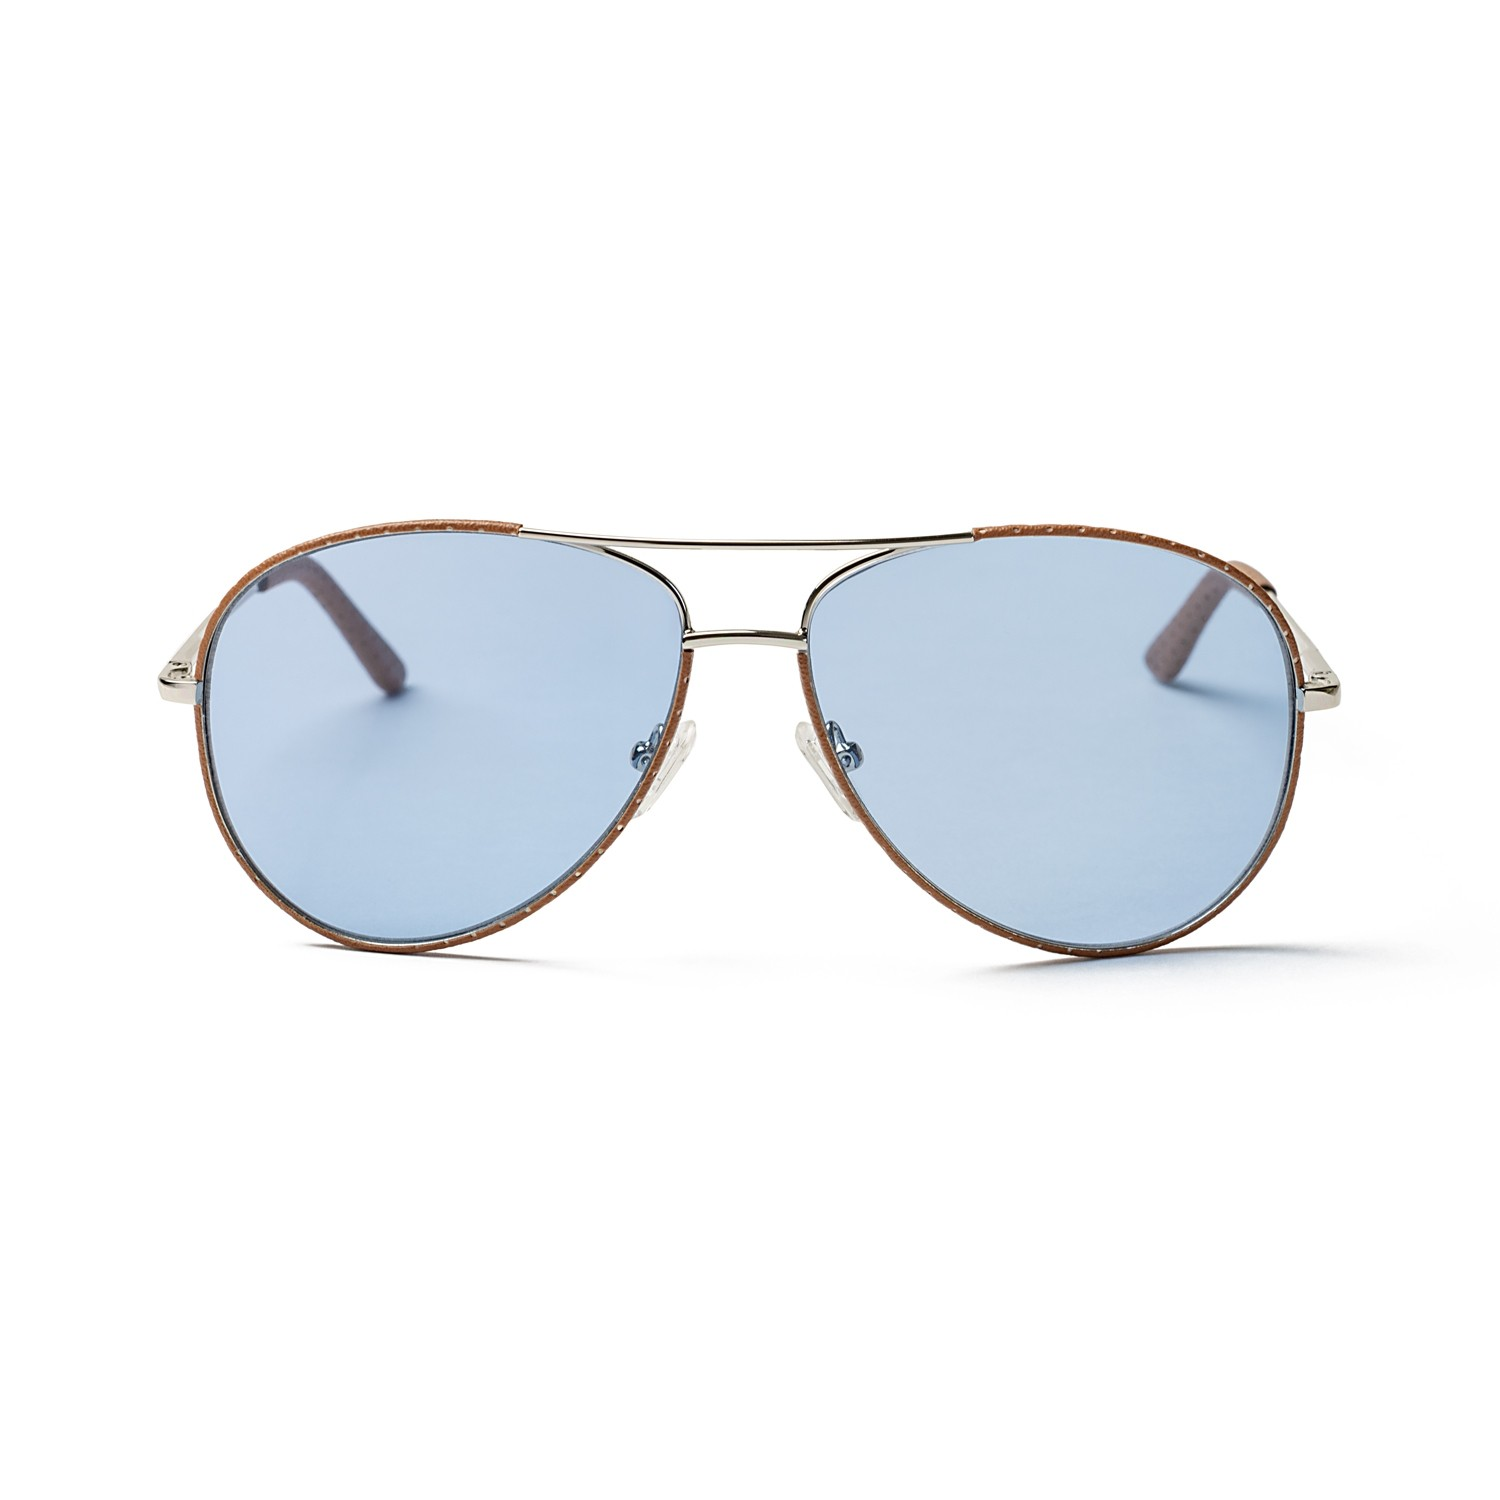 FIENNES SILVER FRAME AND BLUE LENS